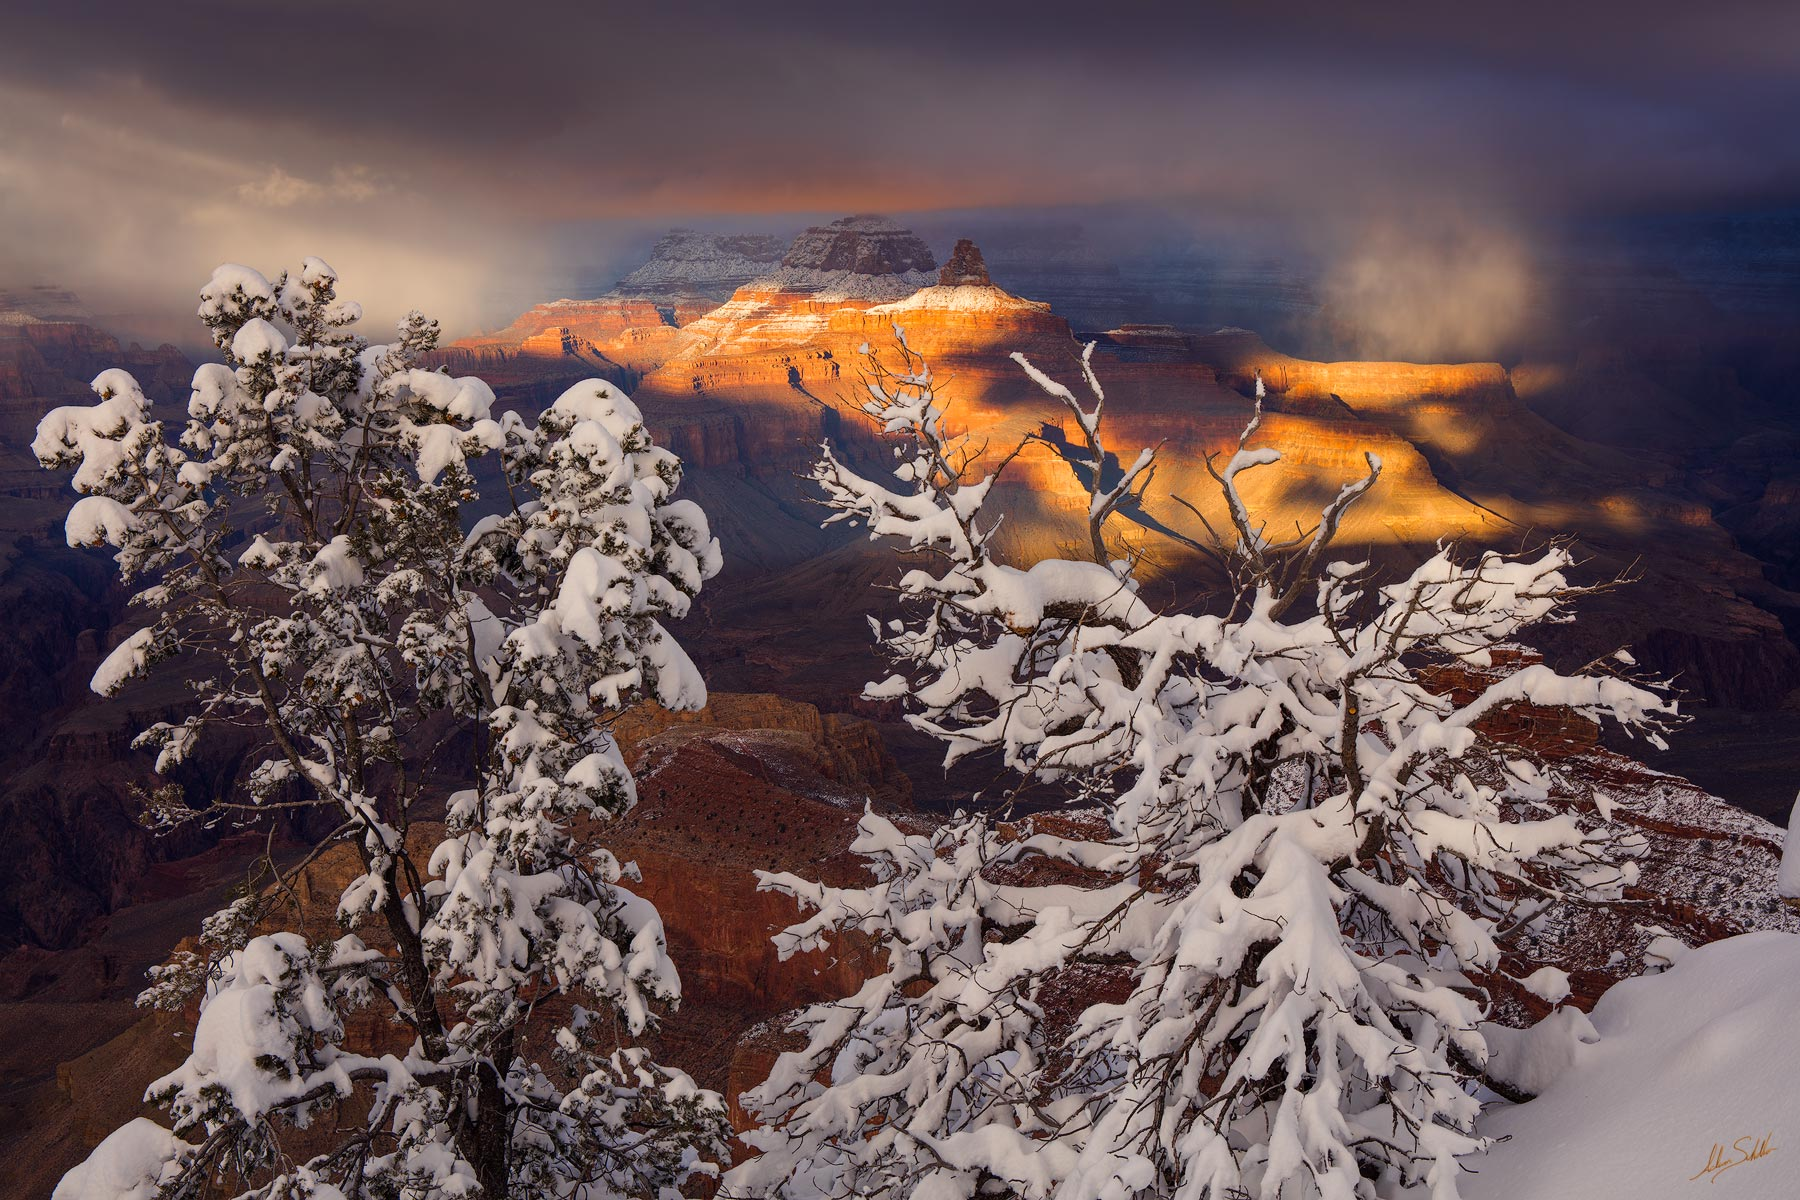 AZ, Arizona, Grand Canyon, Grand Canyon National Park, Snow, Snow at the Grand Canyon, South Rim, South Rim of the Grand Canyon, Winter, Winter at the Grand Canyon, mather point, photo